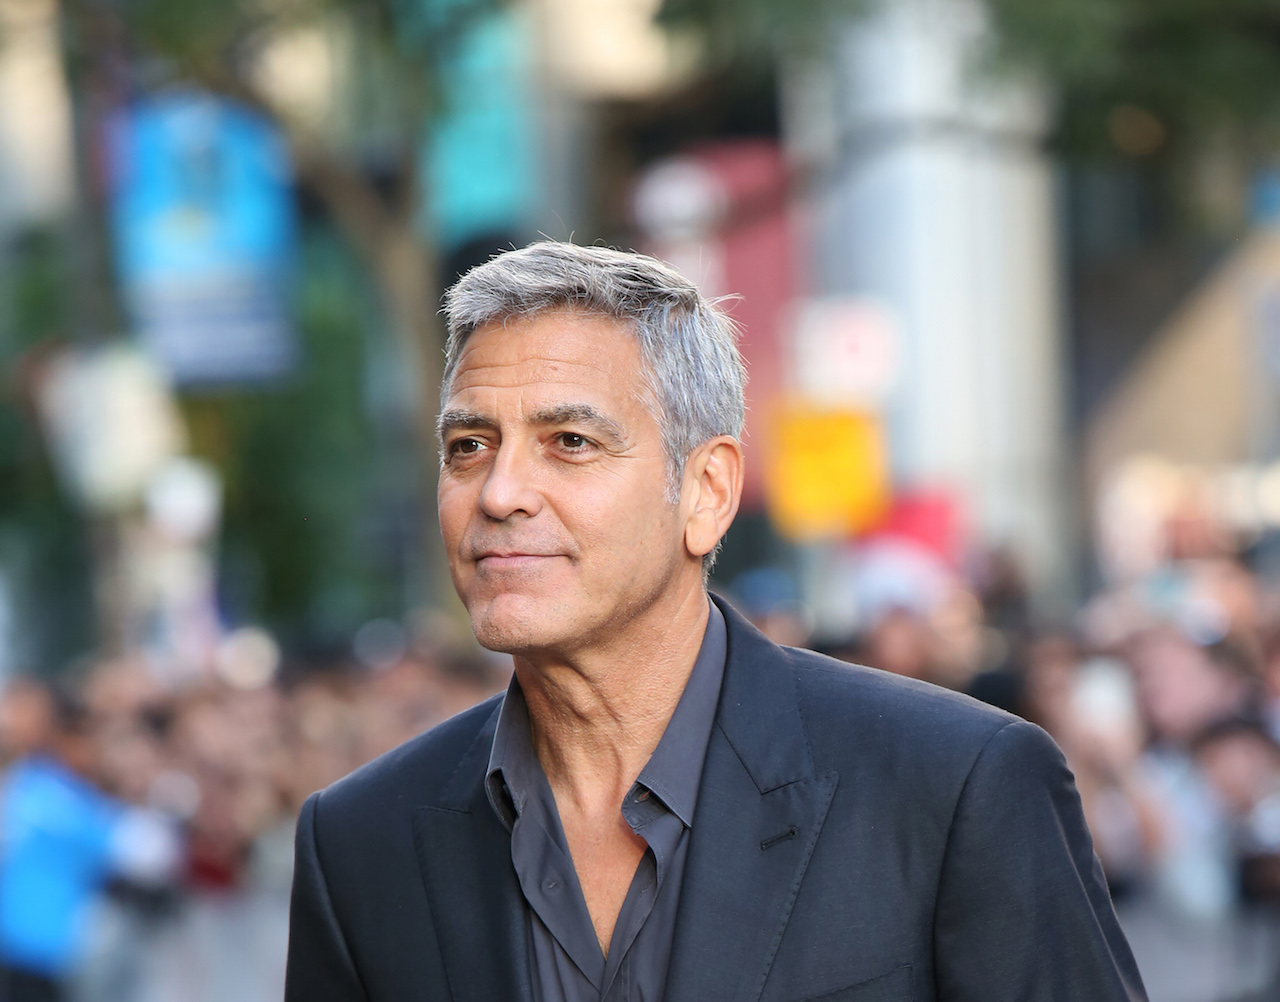 TORONTO, ON - SEPTEMBER 09: George Clooney attends the 'Suburbicon' premiere during the 2017 Toronto International Film Festival at Princess of Wales Theatre on September 9, 2017 in Toronto, Canada. (Photo by Walter McBride/FilmMagic)